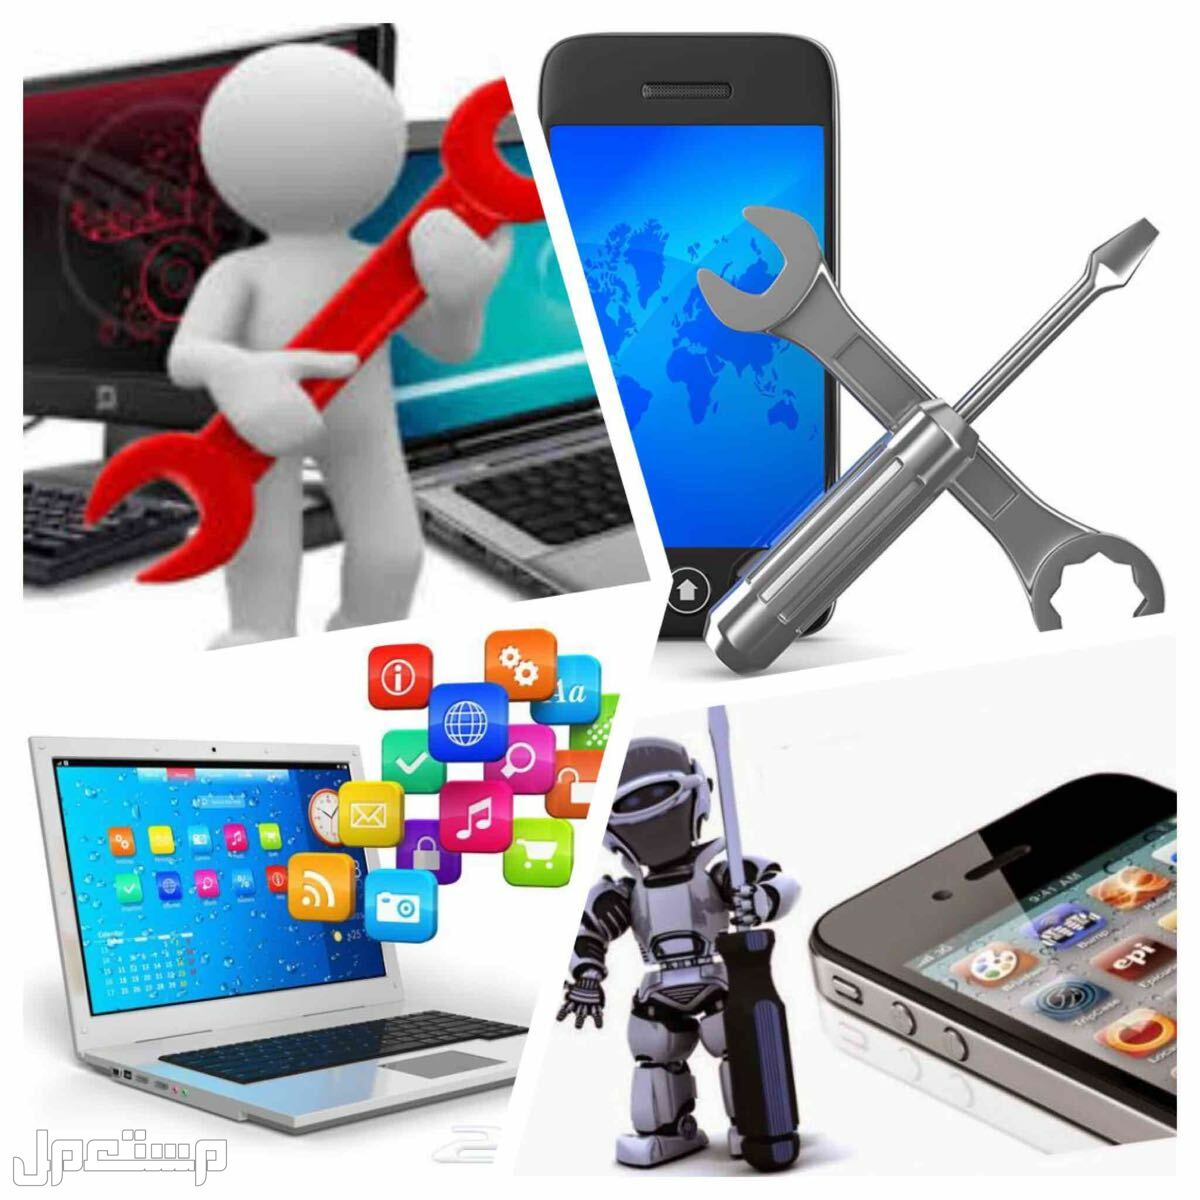 iPhone screens - maintenance of all kinds of smart devices and laptops